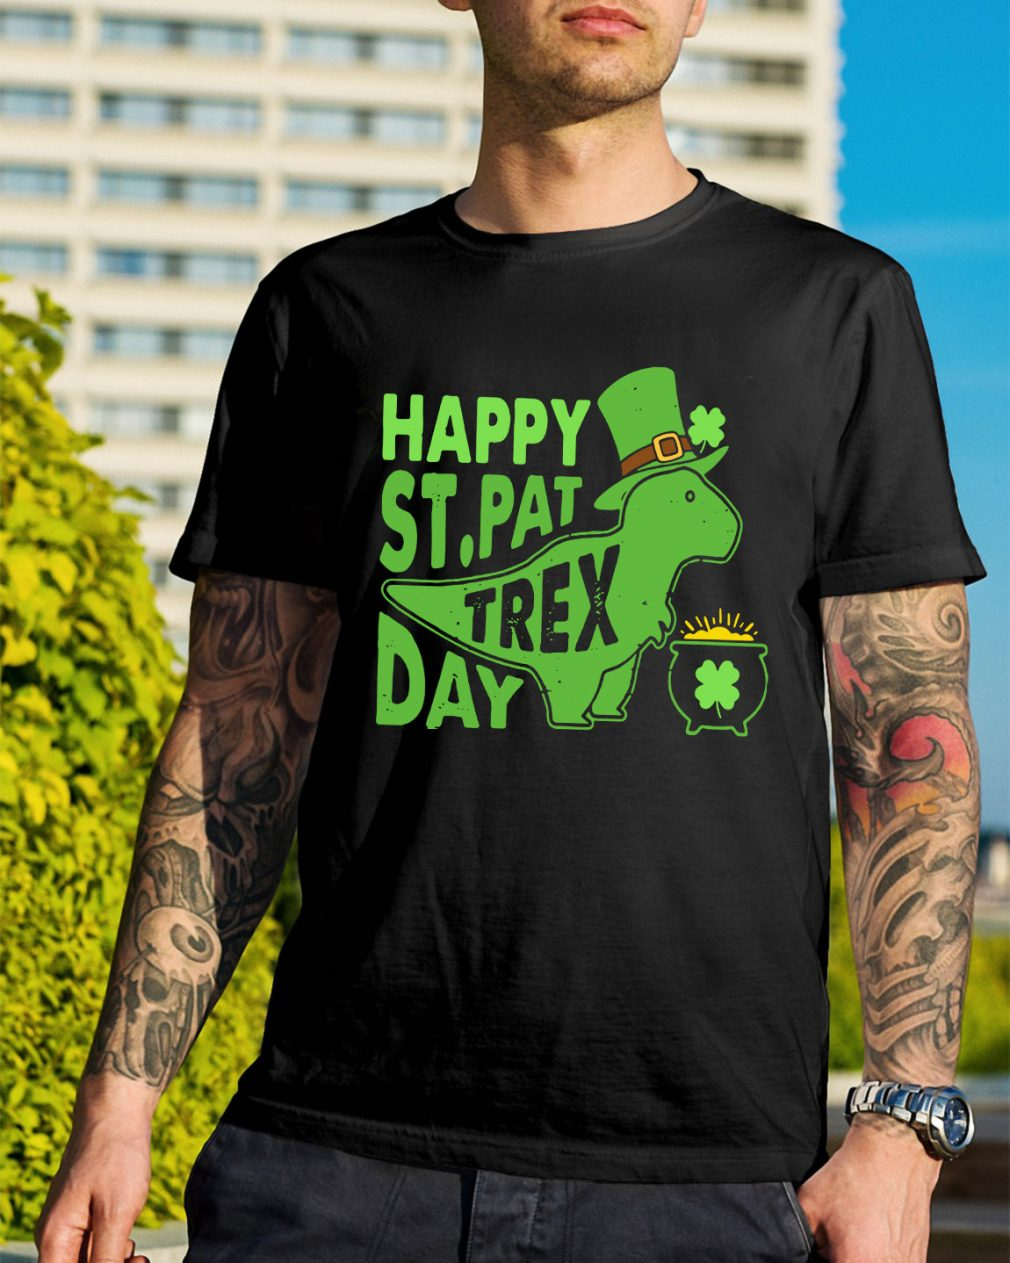 Happy St Pat t-rex day shirt